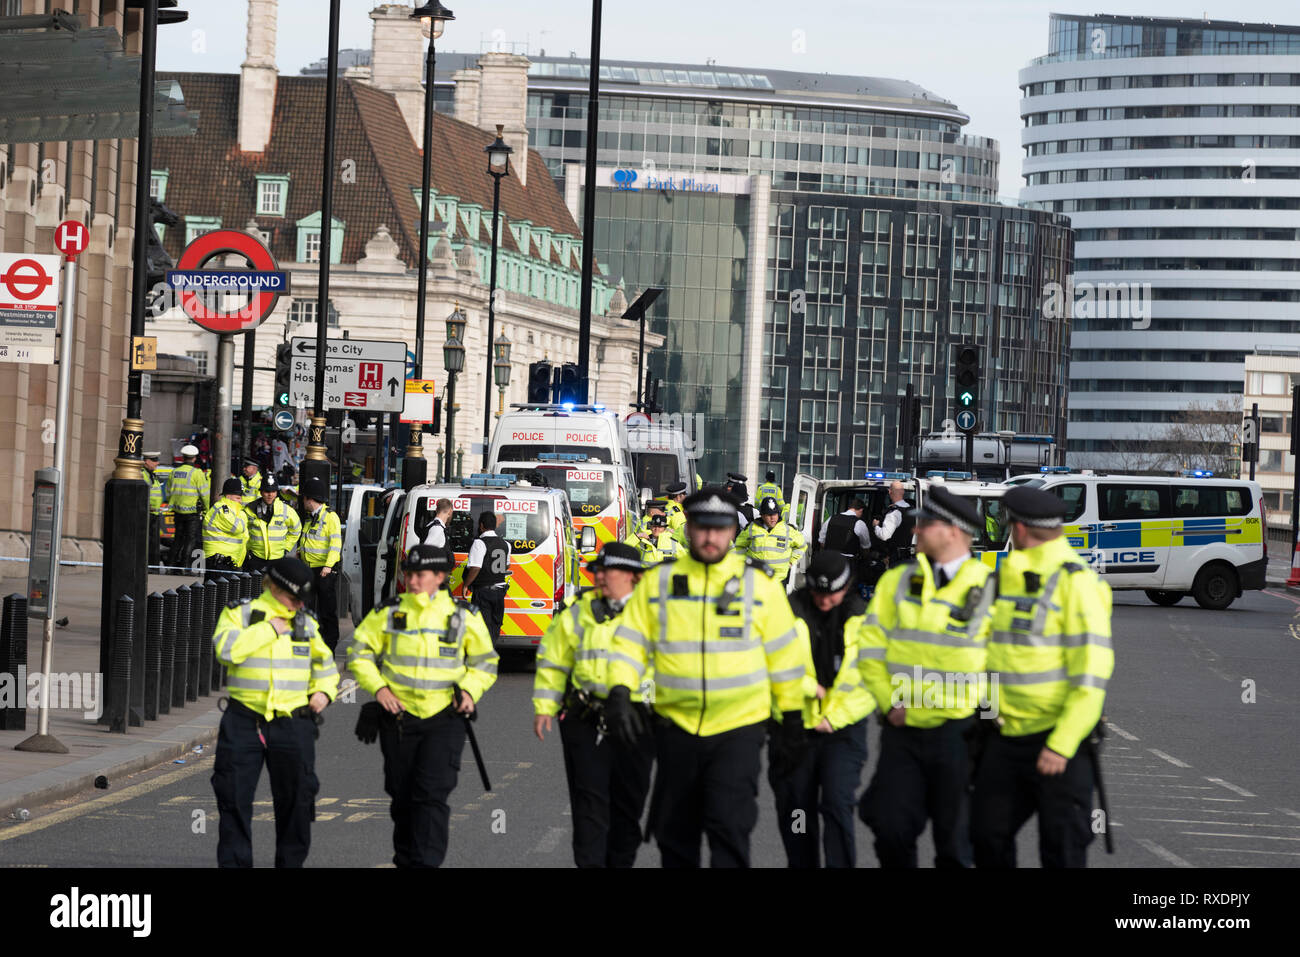 a-suspicious-car-parked-outside-new-scotland-yard-police-headquarters-on-victoria-embankment-westminster-london-uk-caused-the-police-to-lockdown-and-clear-the-the-area-around-it-and-westminster-bridge-including-stopping-river-traffic-on-the-thames-police-broke-the-rear-screen-of-the-car-to-gain-entry-police-cordoning-off-and-clearing-westminster-bridge-road-RXDPJY.jpg